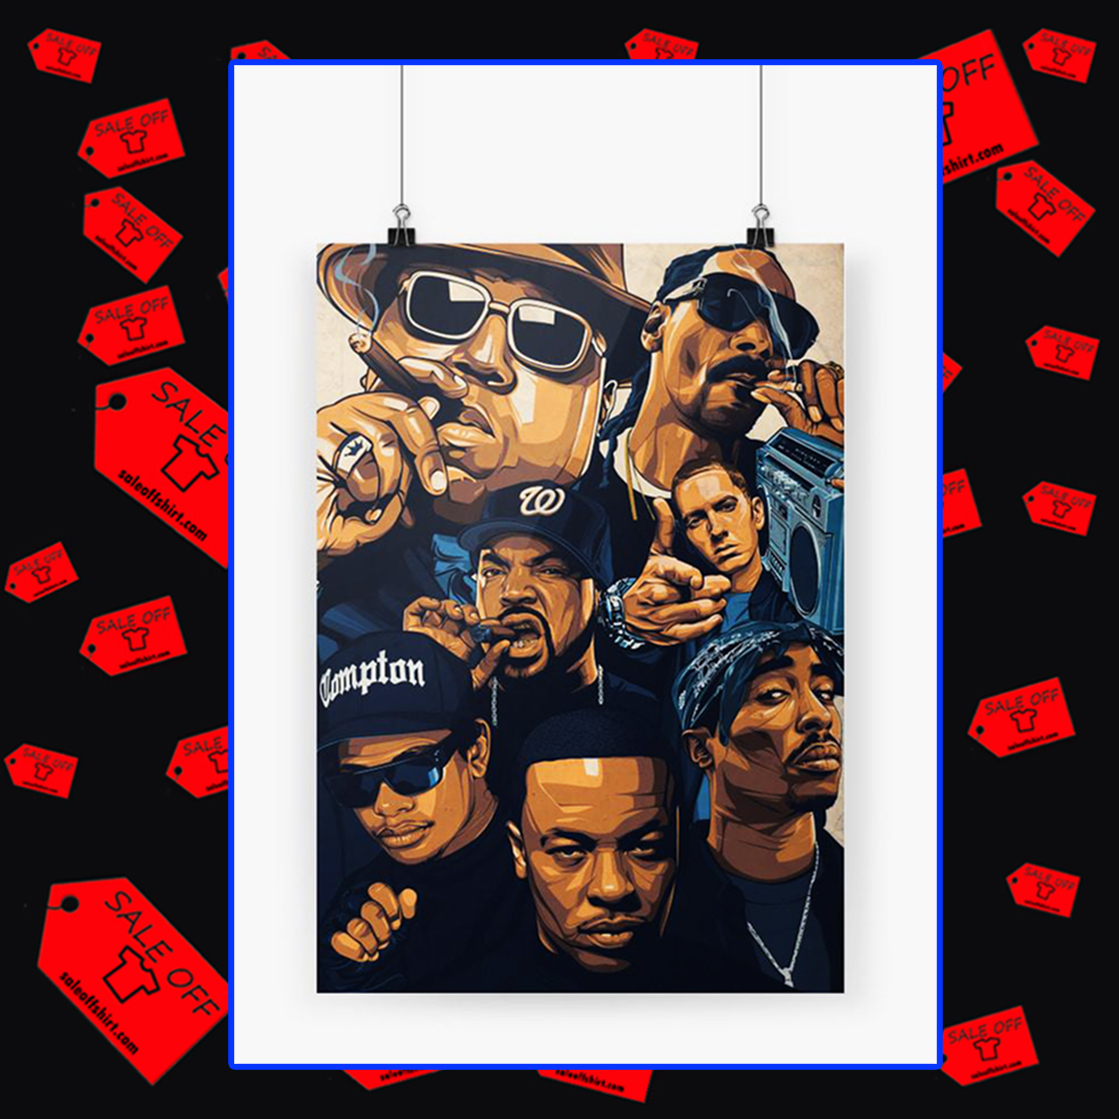 Notorious BIG Snoop Dogg Ice Cube Eminem Tupac Poster A2 (42x59)